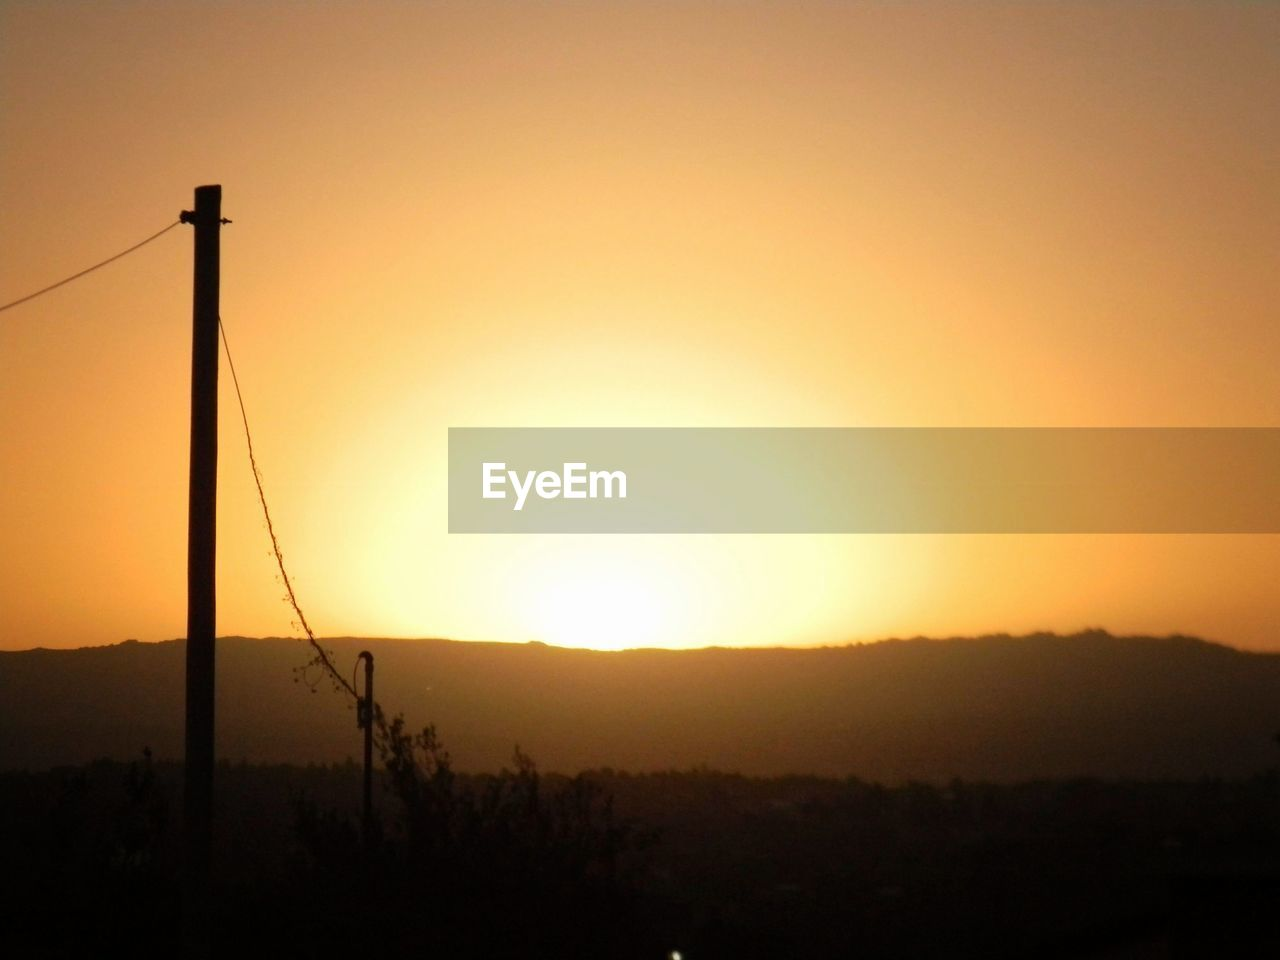 sunset, sky, silhouette, orange color, sun, beauty in nature, tranquility, scenics - nature, nature, landscape, copy space, environment, no people, tranquil scene, technology, electricity, outdoors, idyllic, electricity pylon, clear sky, power supply, bright, telephone line